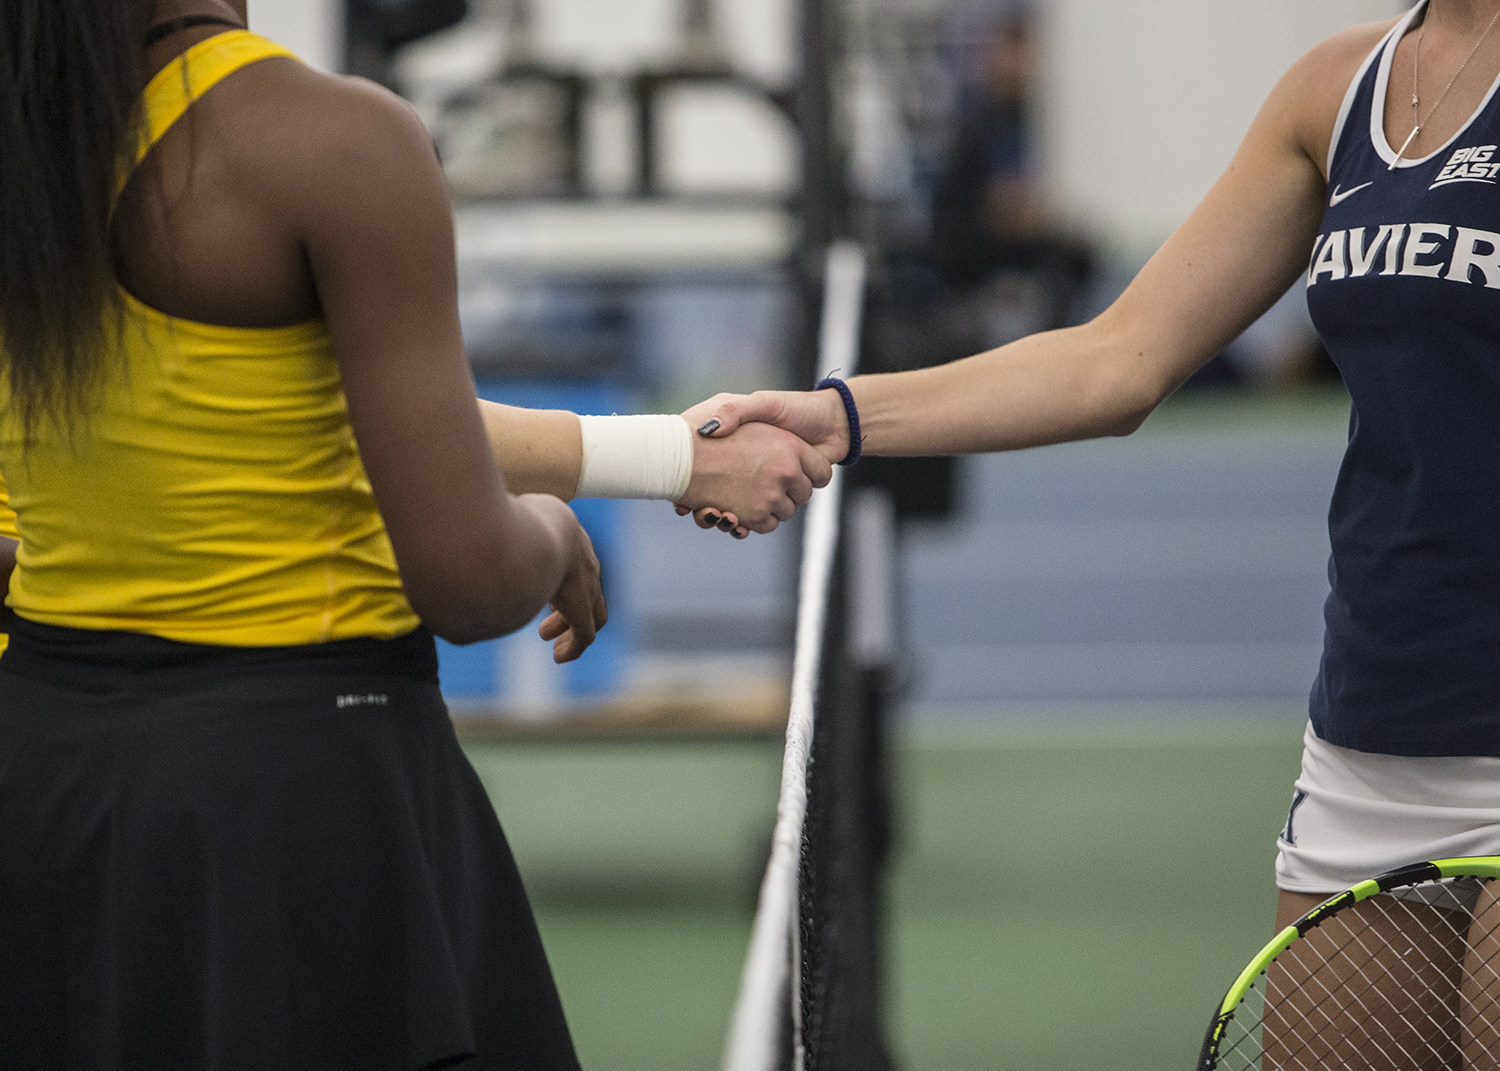 Players+shake+hands+after+a+tennis+match+between+Iowa+and+Xavier+at+the+Hawkeye+Tennis+and+Recreation+Complex+on+Friday%2C+January+18%2C+2019.+The+Hawkeyes+swept+the+match+against+the+Musketeers%2C+7-0.